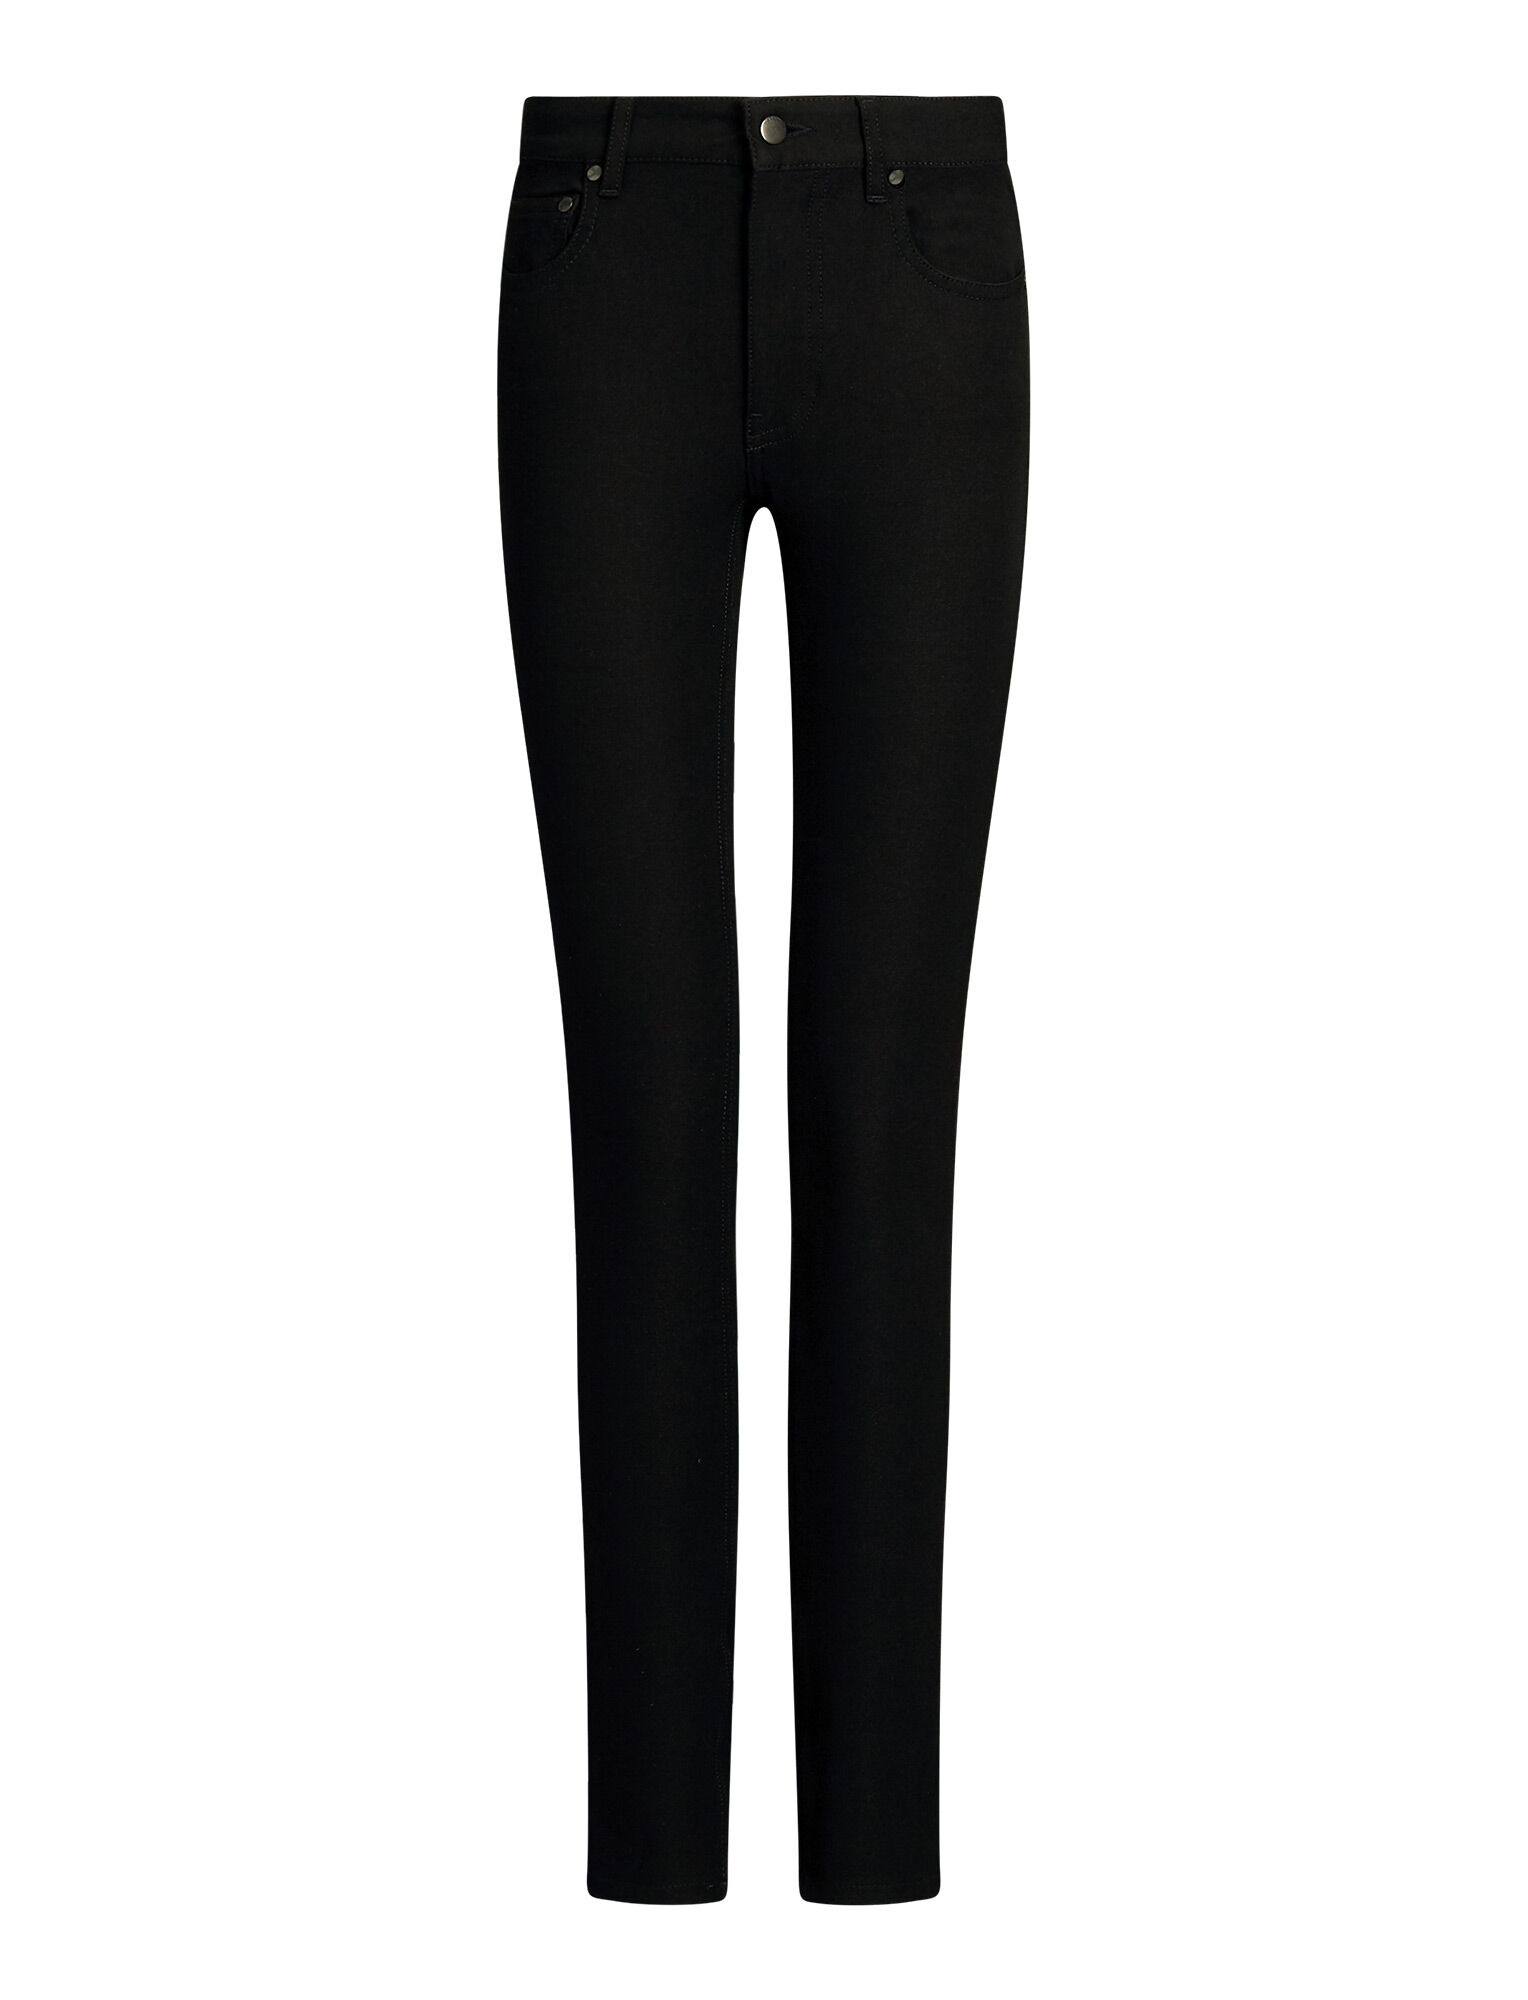 Joseph, Cloud Gabardine Stretch Trousers, in BLACK